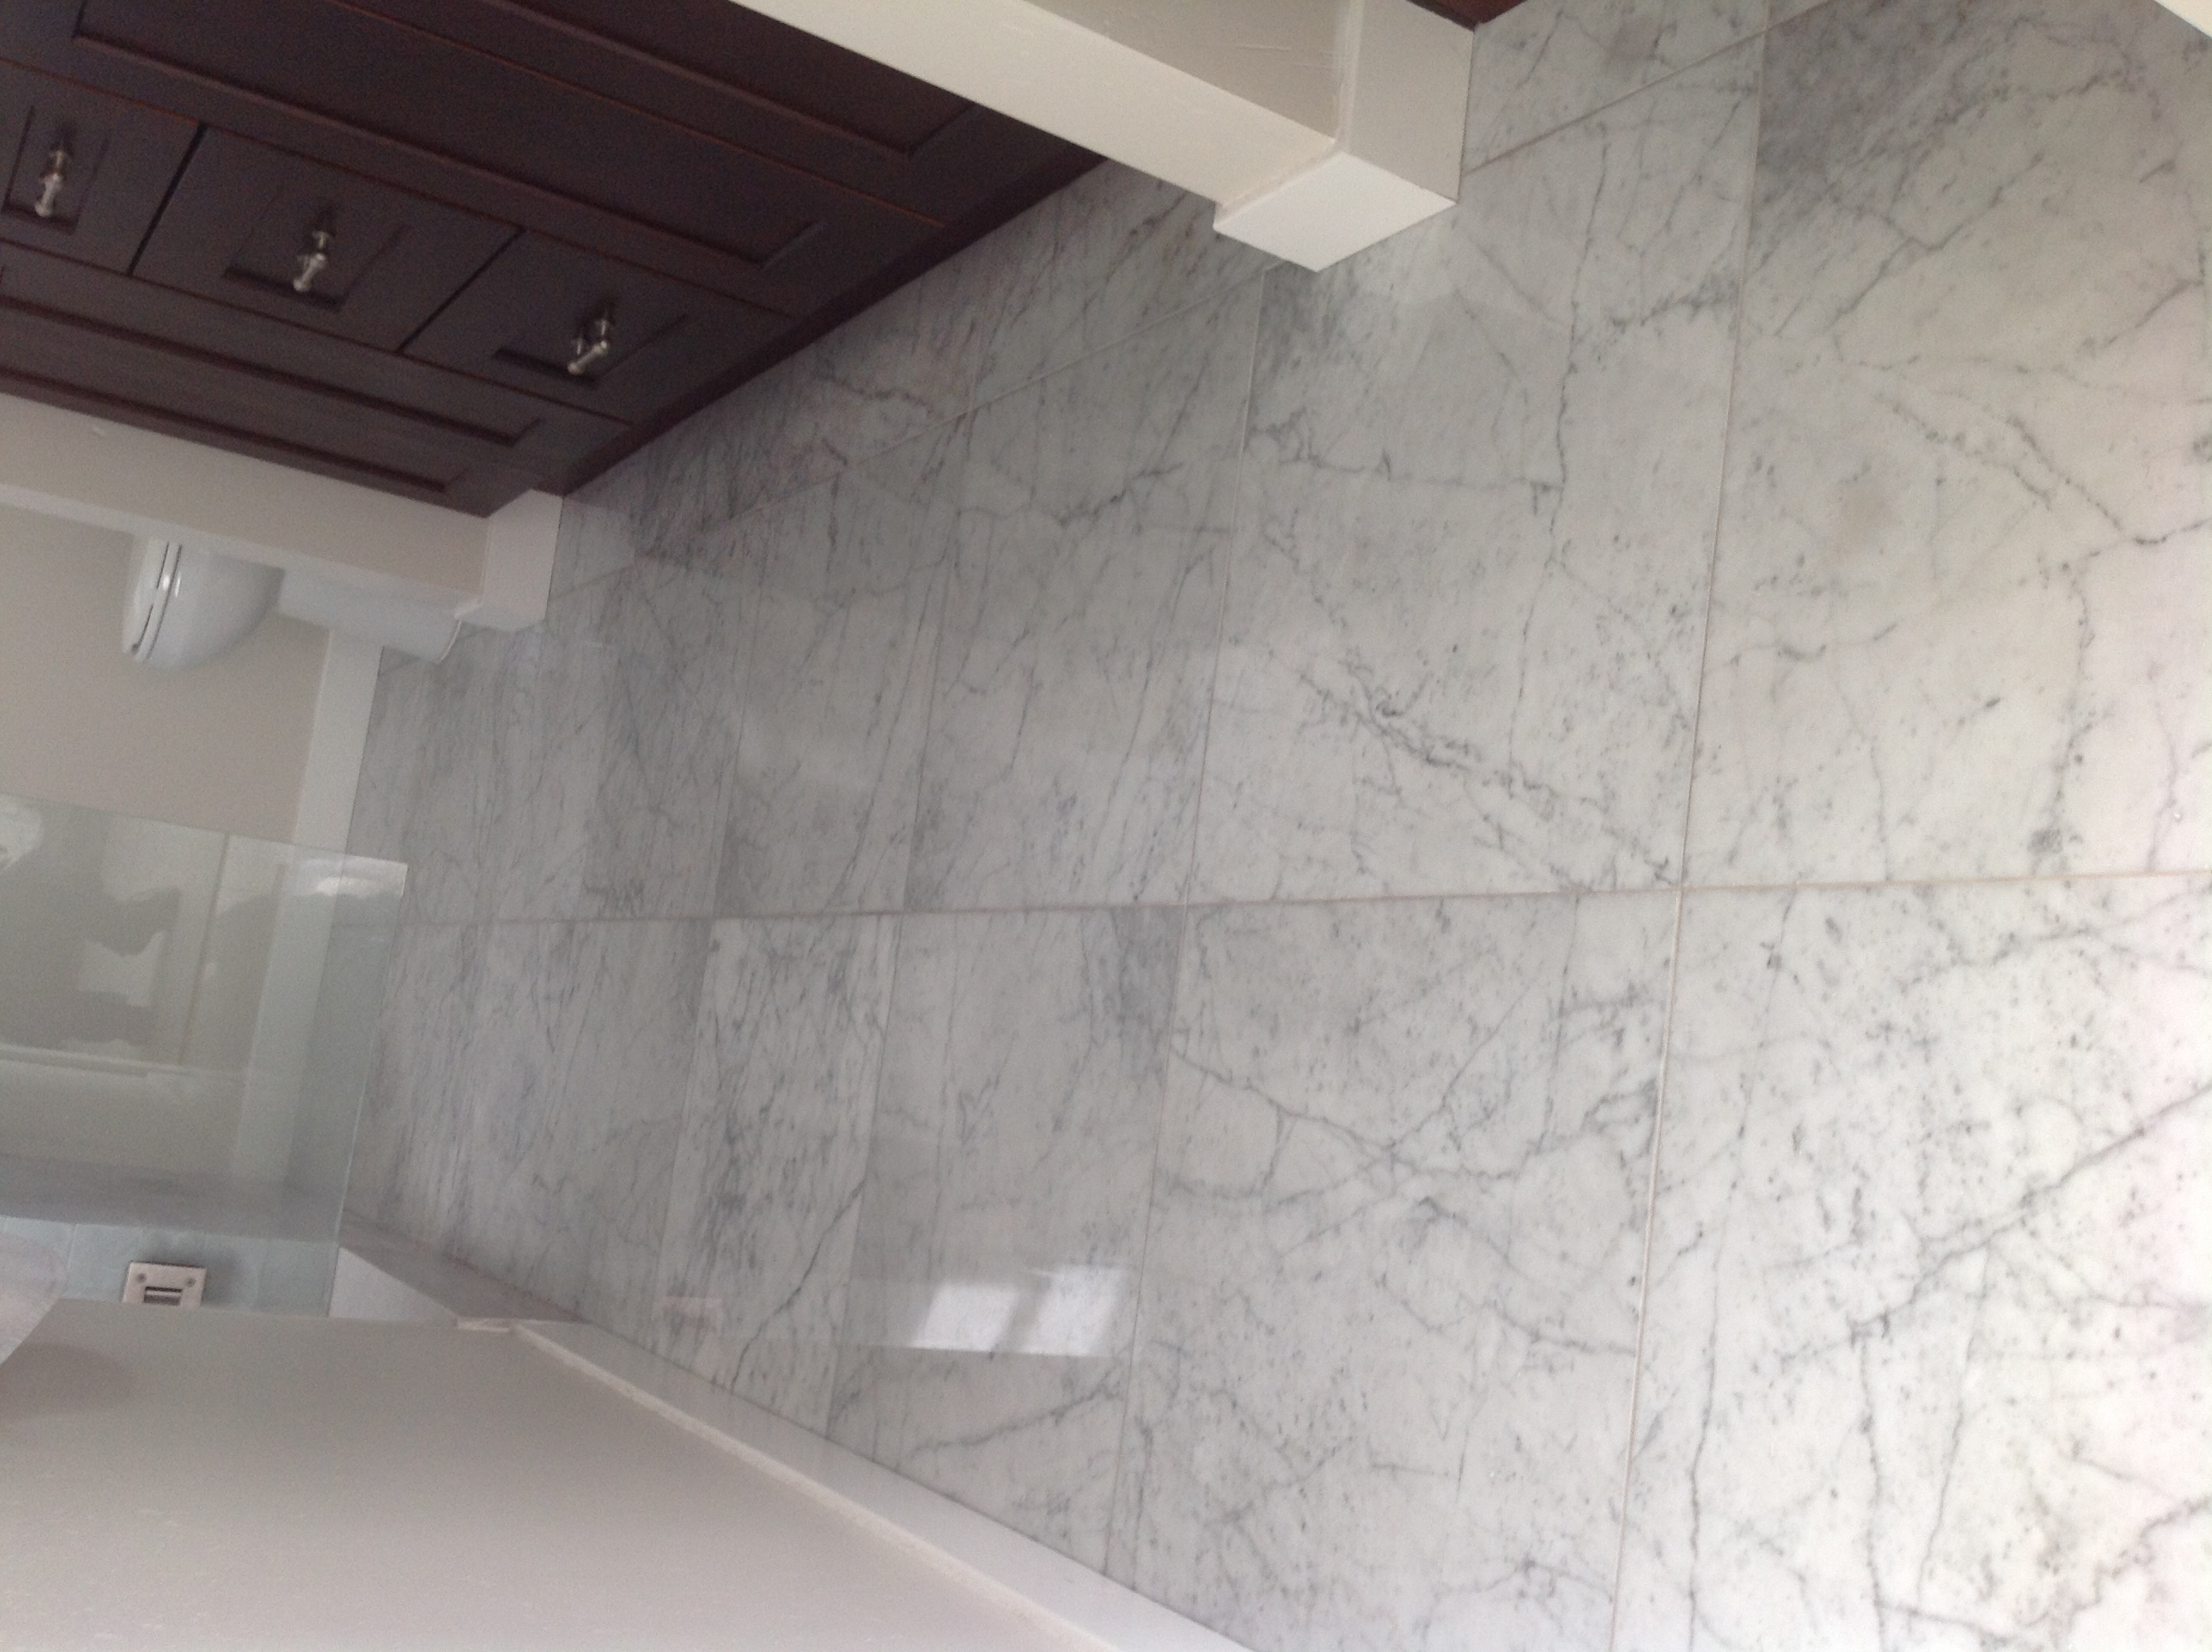 polished white marble floor tiles image. Polished White Marble Floor Tiles   Wood Floors